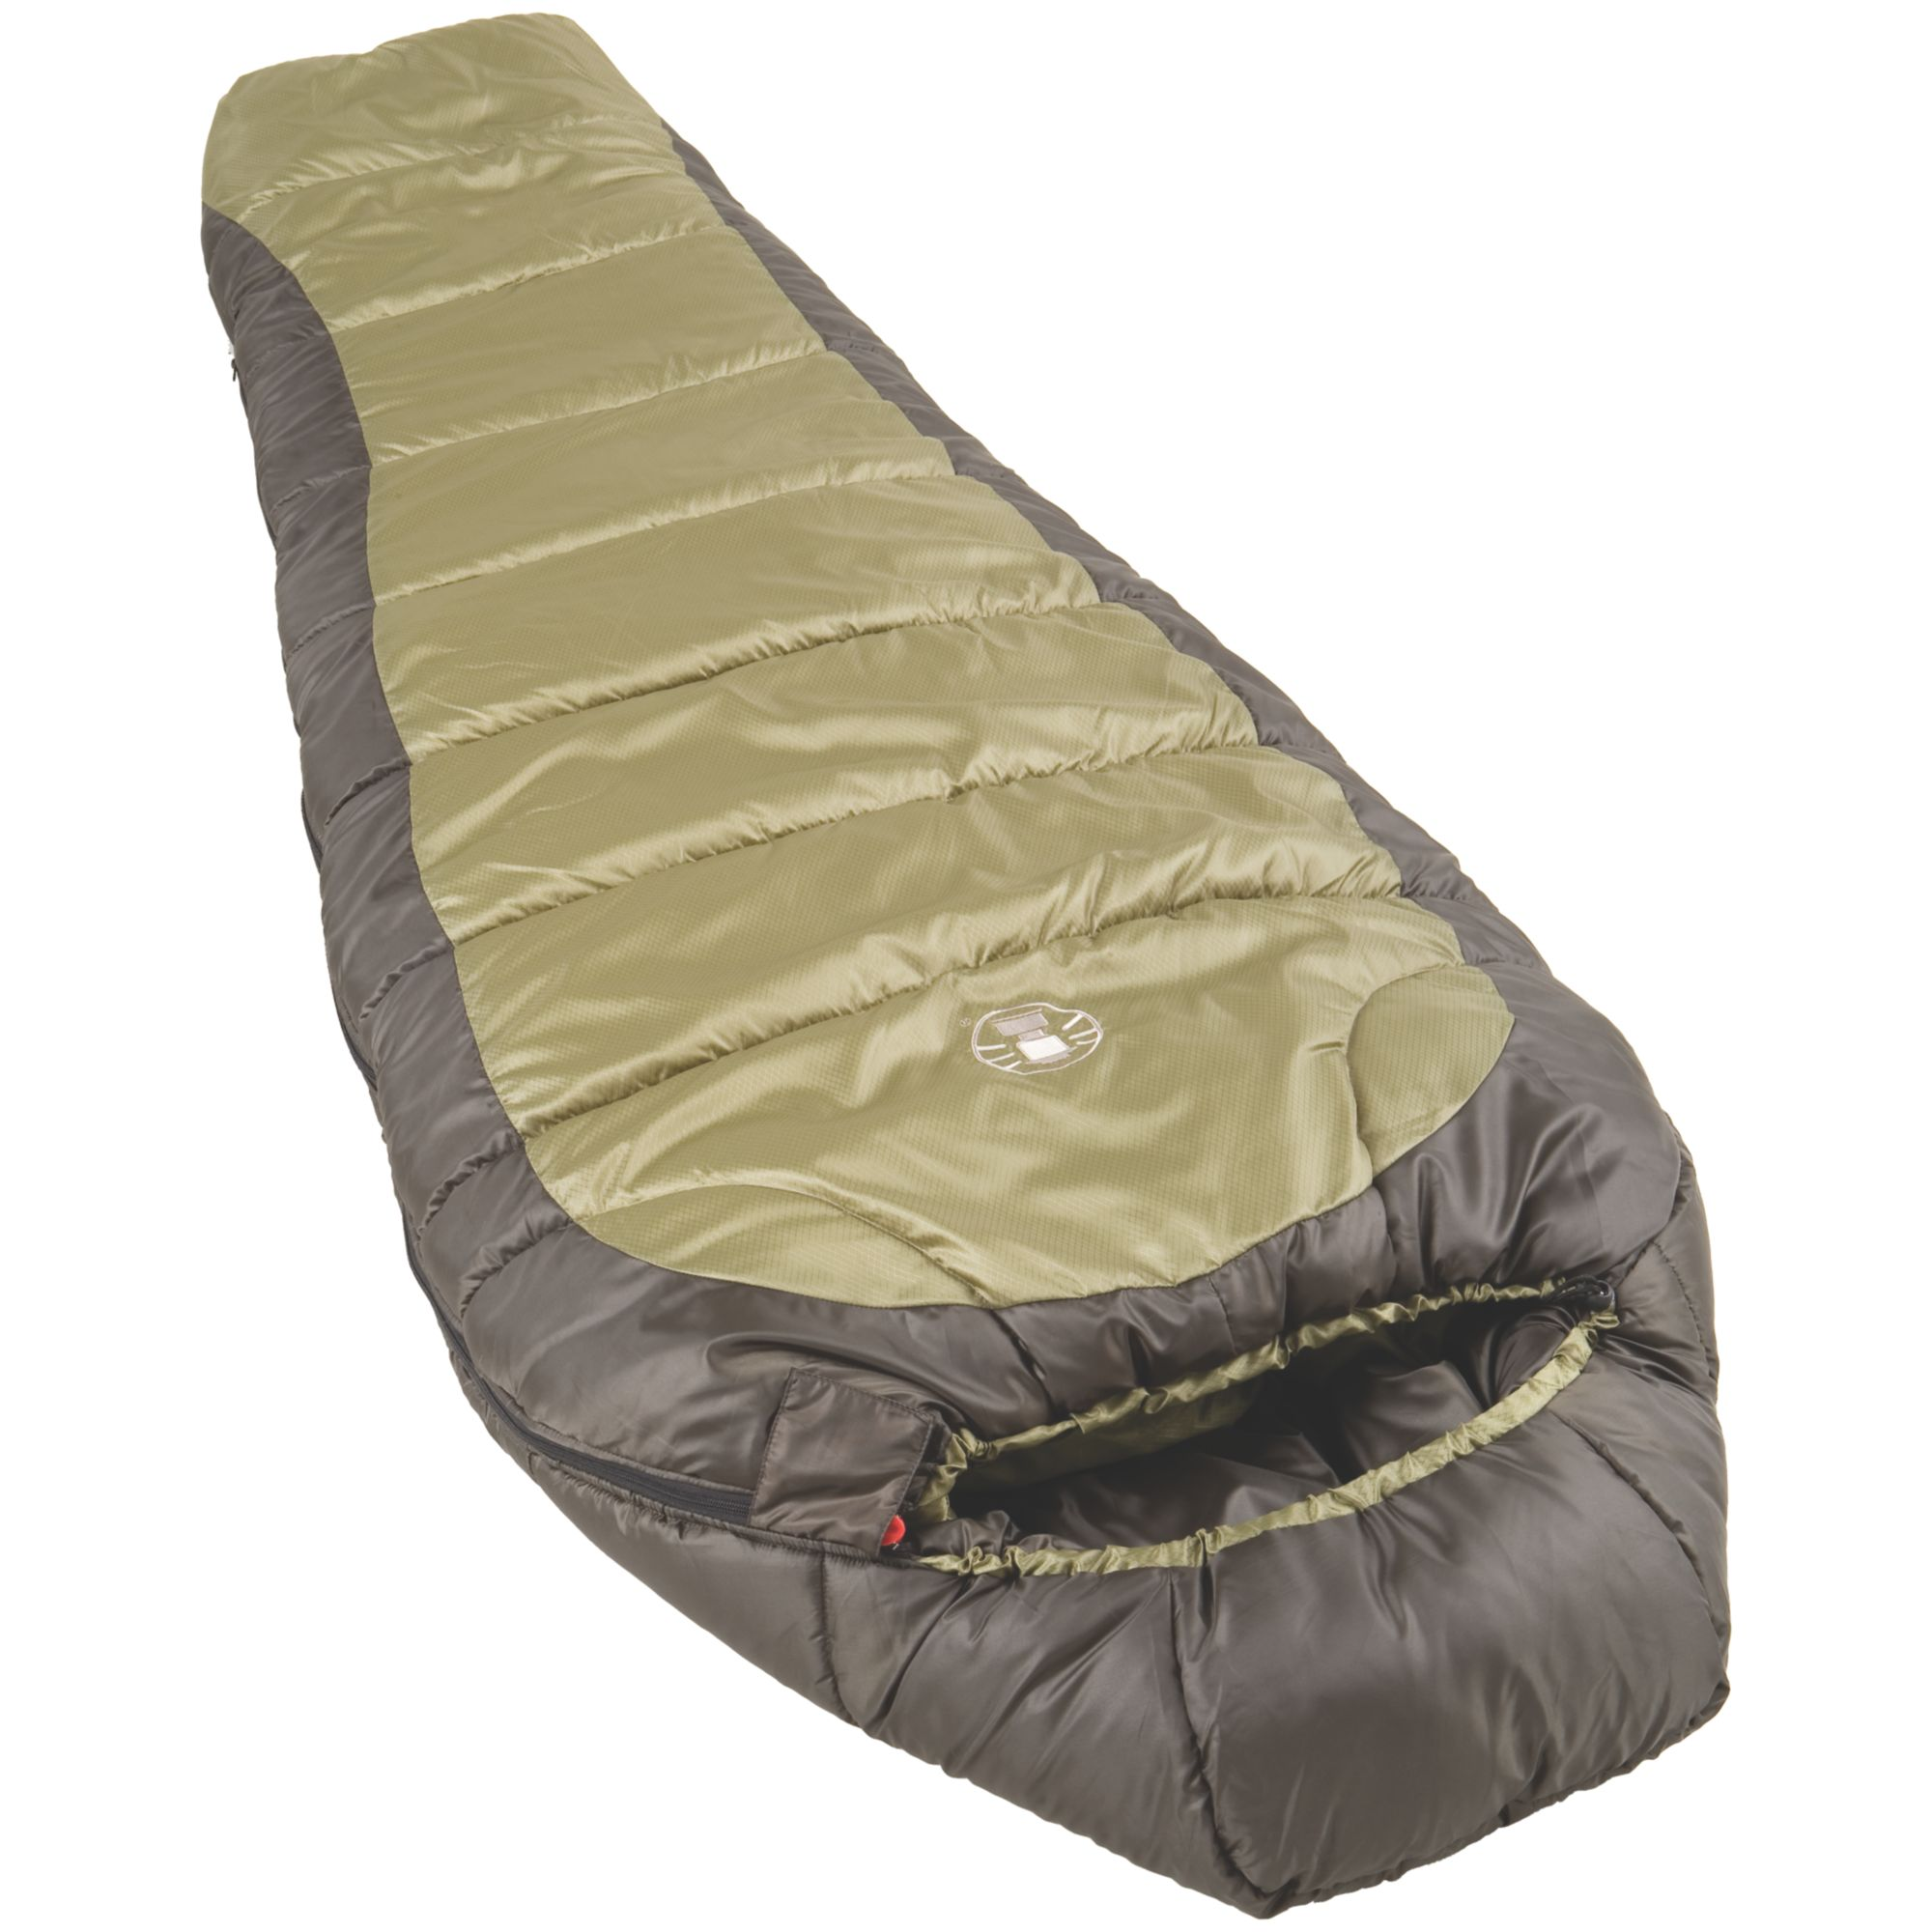 Marmot Helium Sleeping Bag